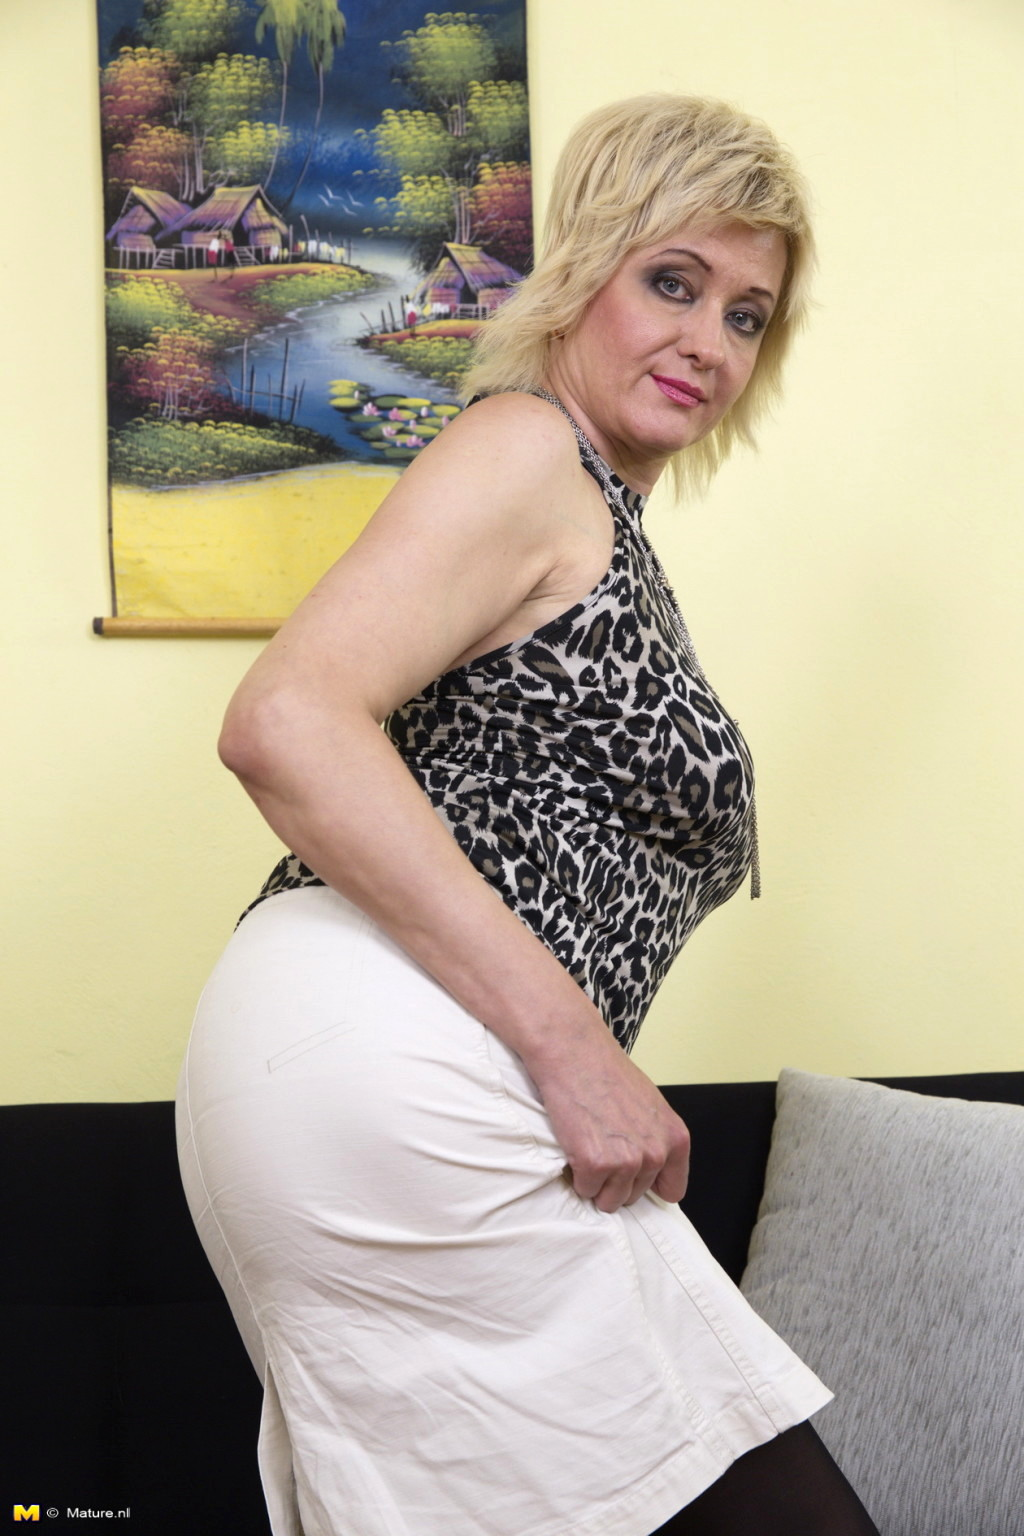 terra bella mature personals Meet terra bella singles online & chat in the forums dhu is a 100% free dating site to find personals & casual encounters in terra bella.